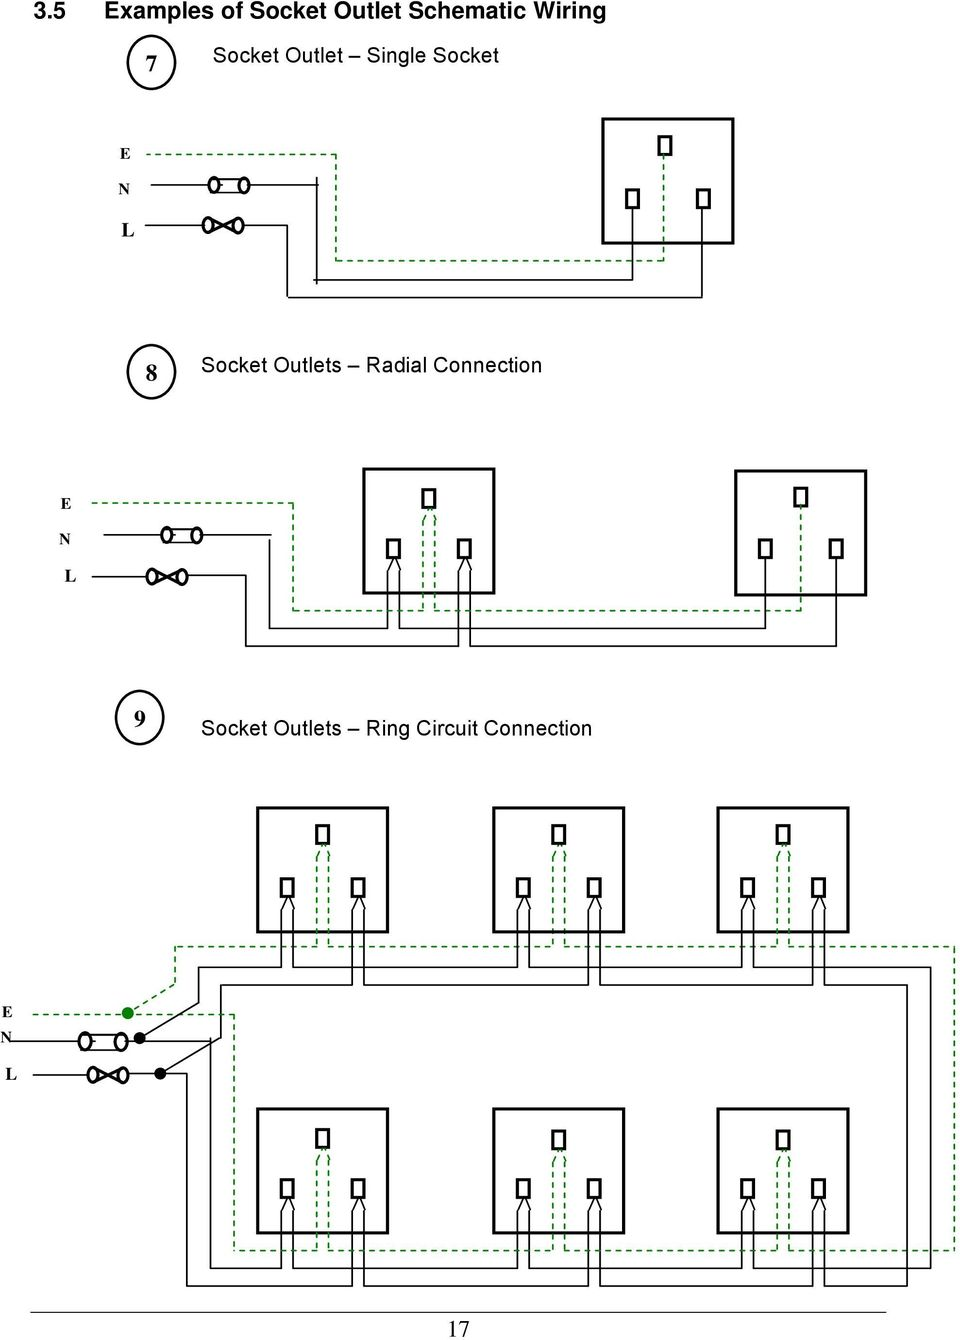 Guidelines For Electrical Wiring In Residential Buildings Pdf Basic Outlet 8 Socket Outlets Radial Connection E N L 9